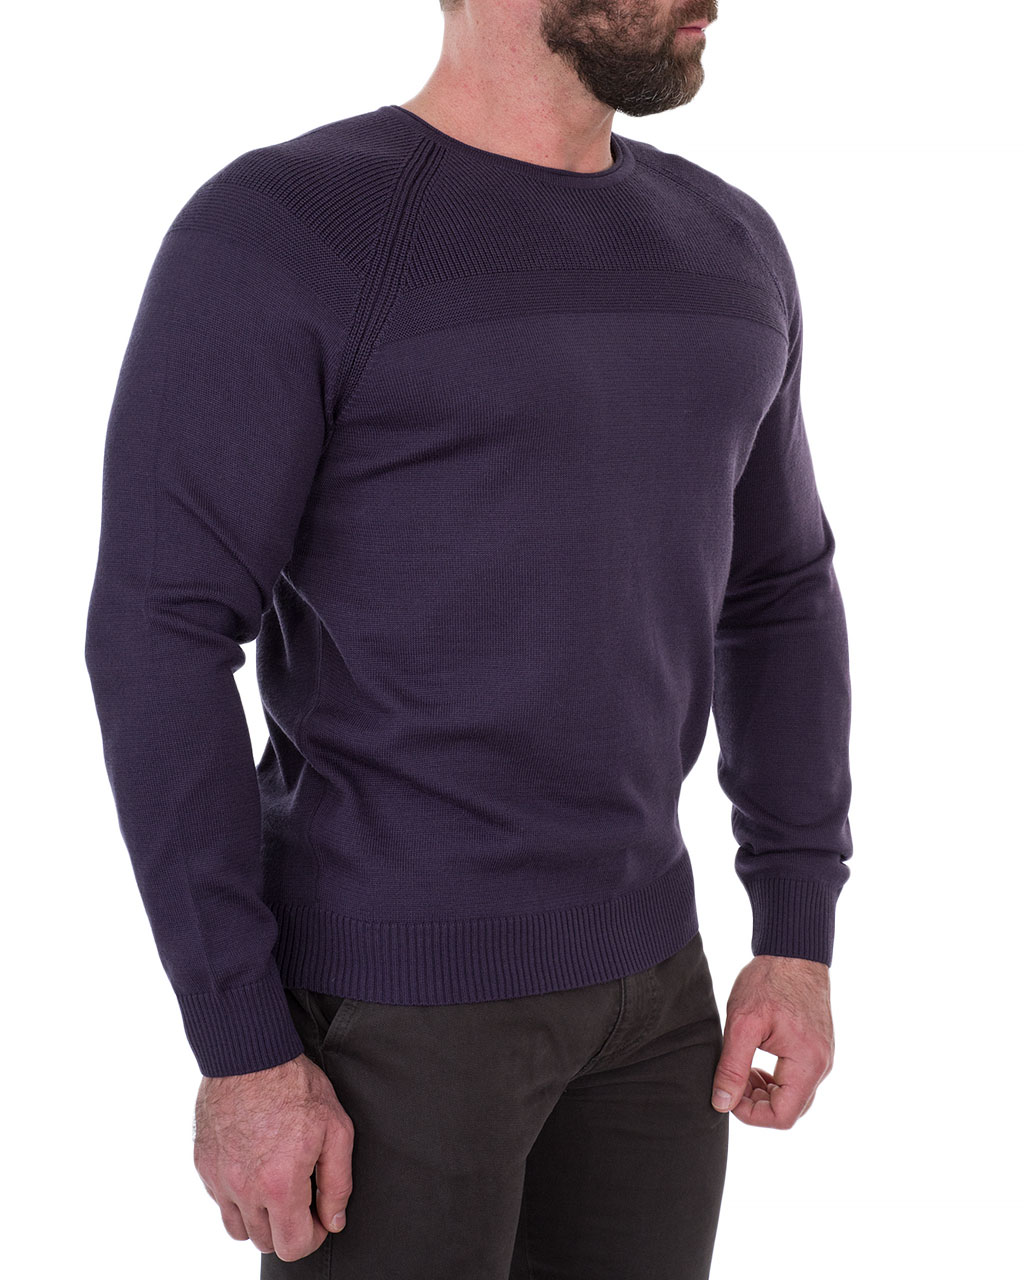 Men's jumper 7450-45532-860/19-20--2 (4)